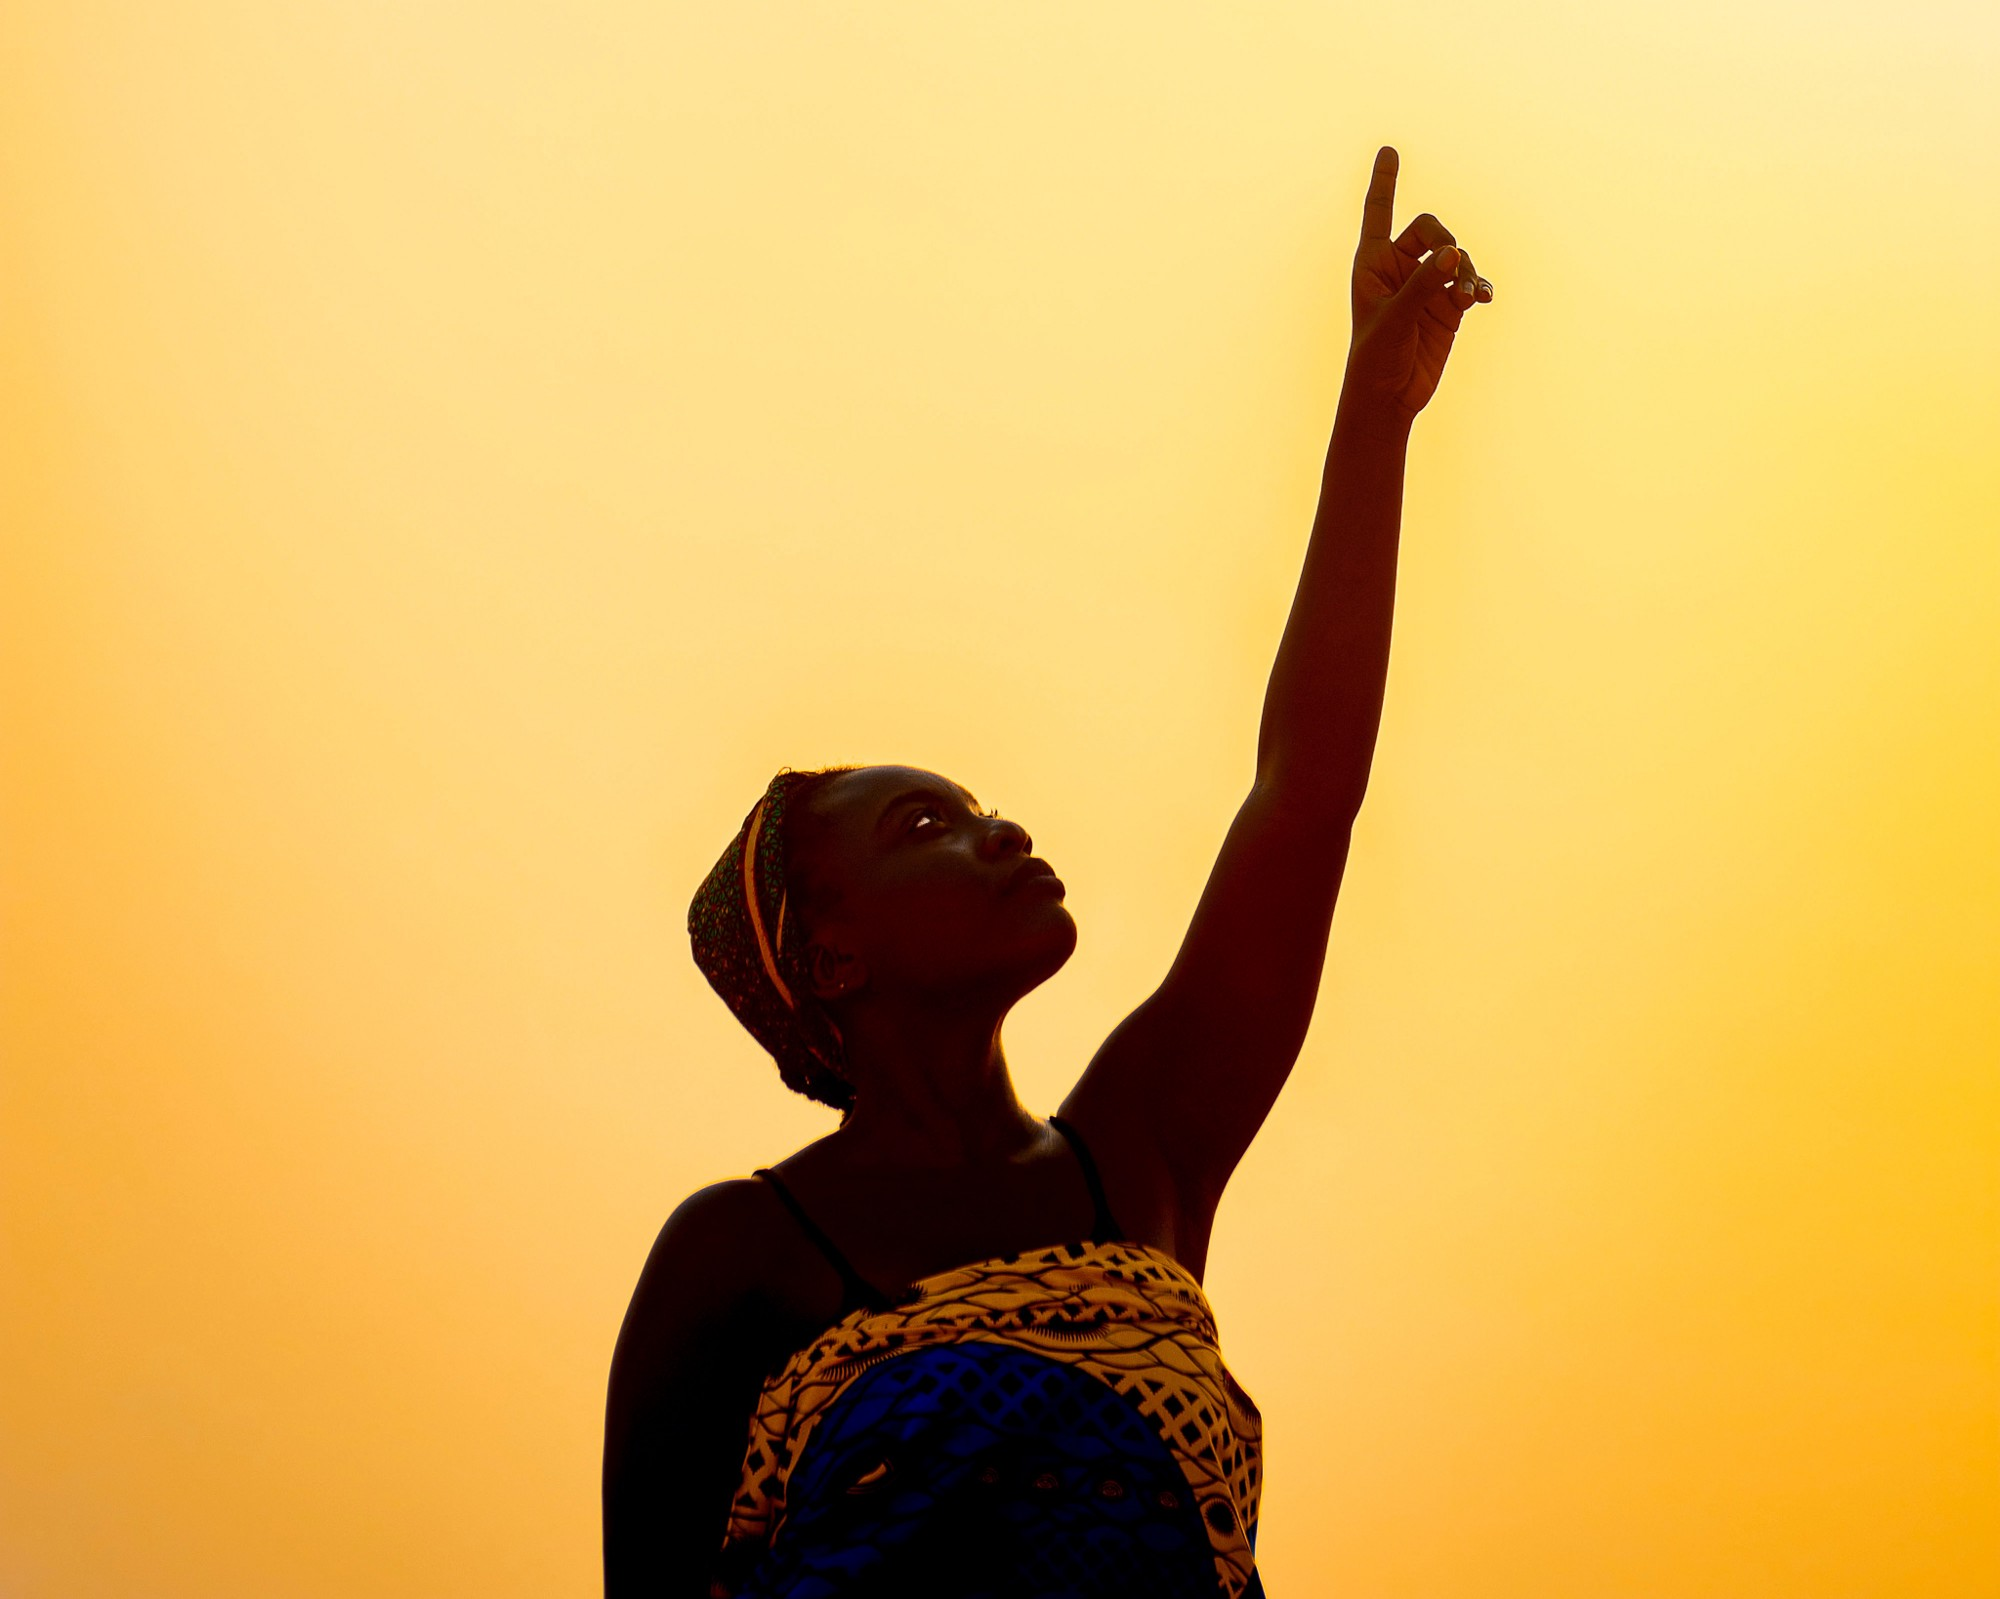 Woman pointing at the sun during a golden sunset.